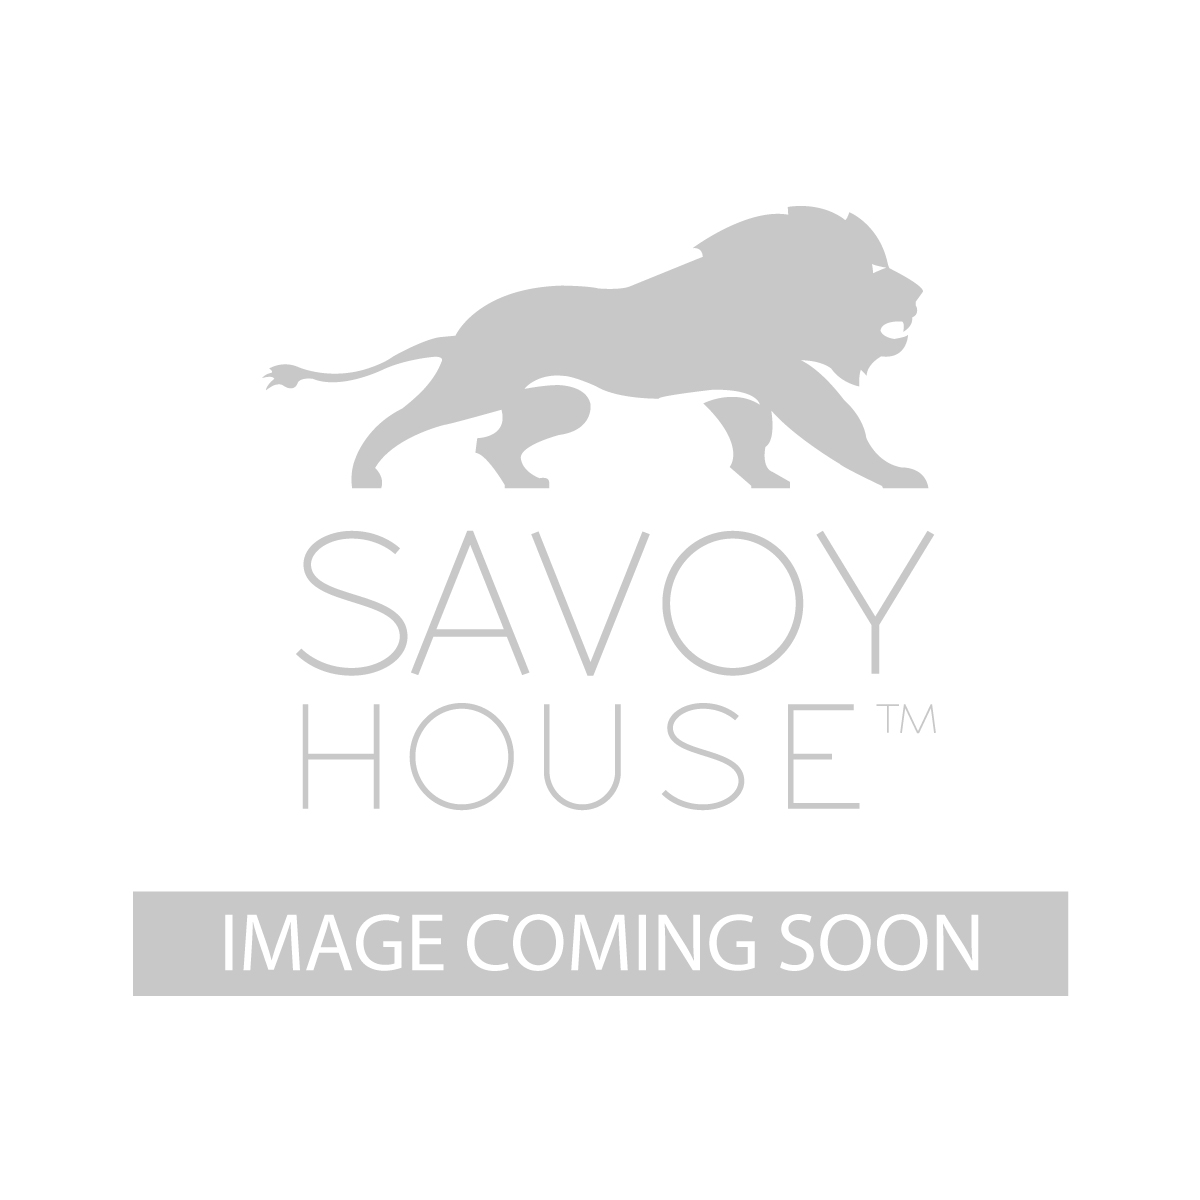 9 7144 1 44 Monroe 1 Light Sconce By Savoy House